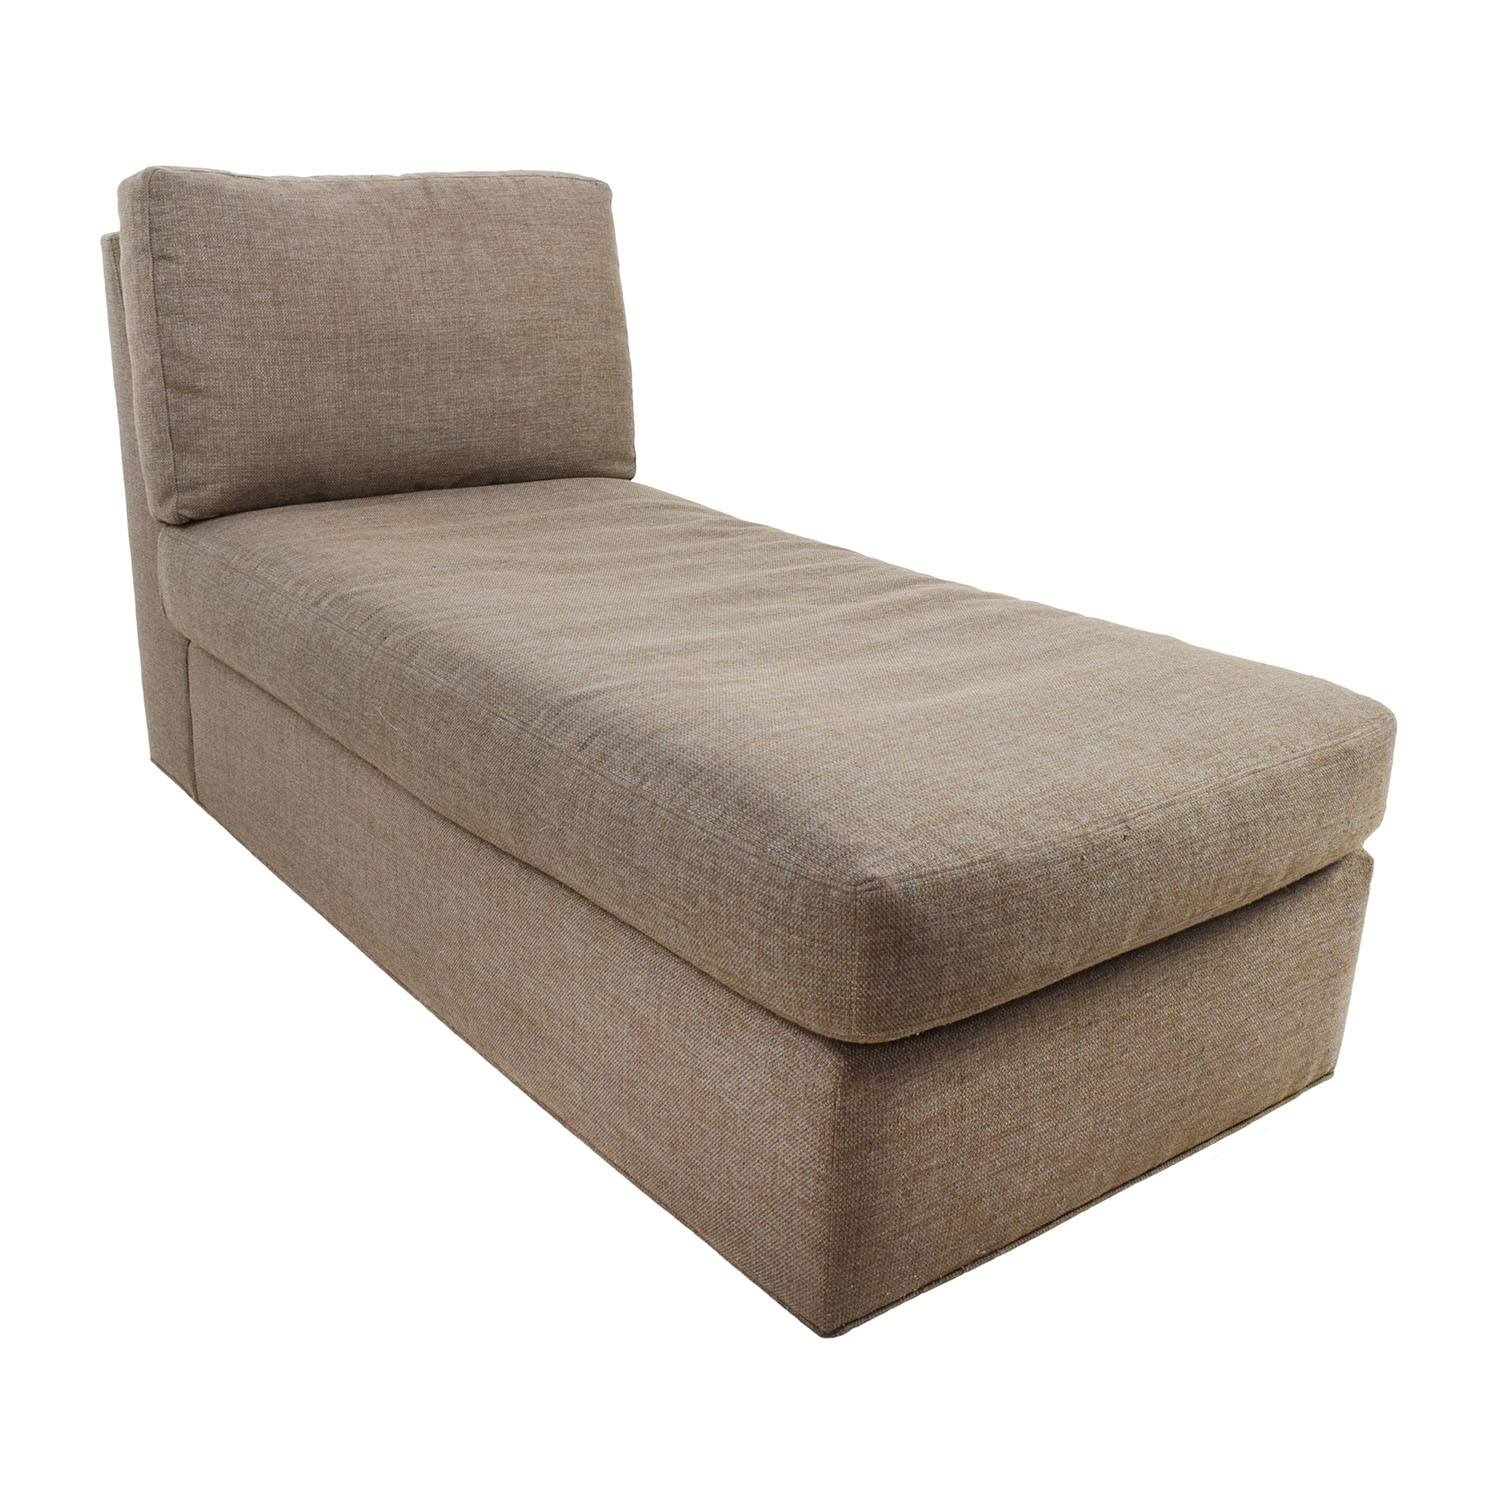 75 off crate and barrel crate barrel brown chaise for Chaise and lounge